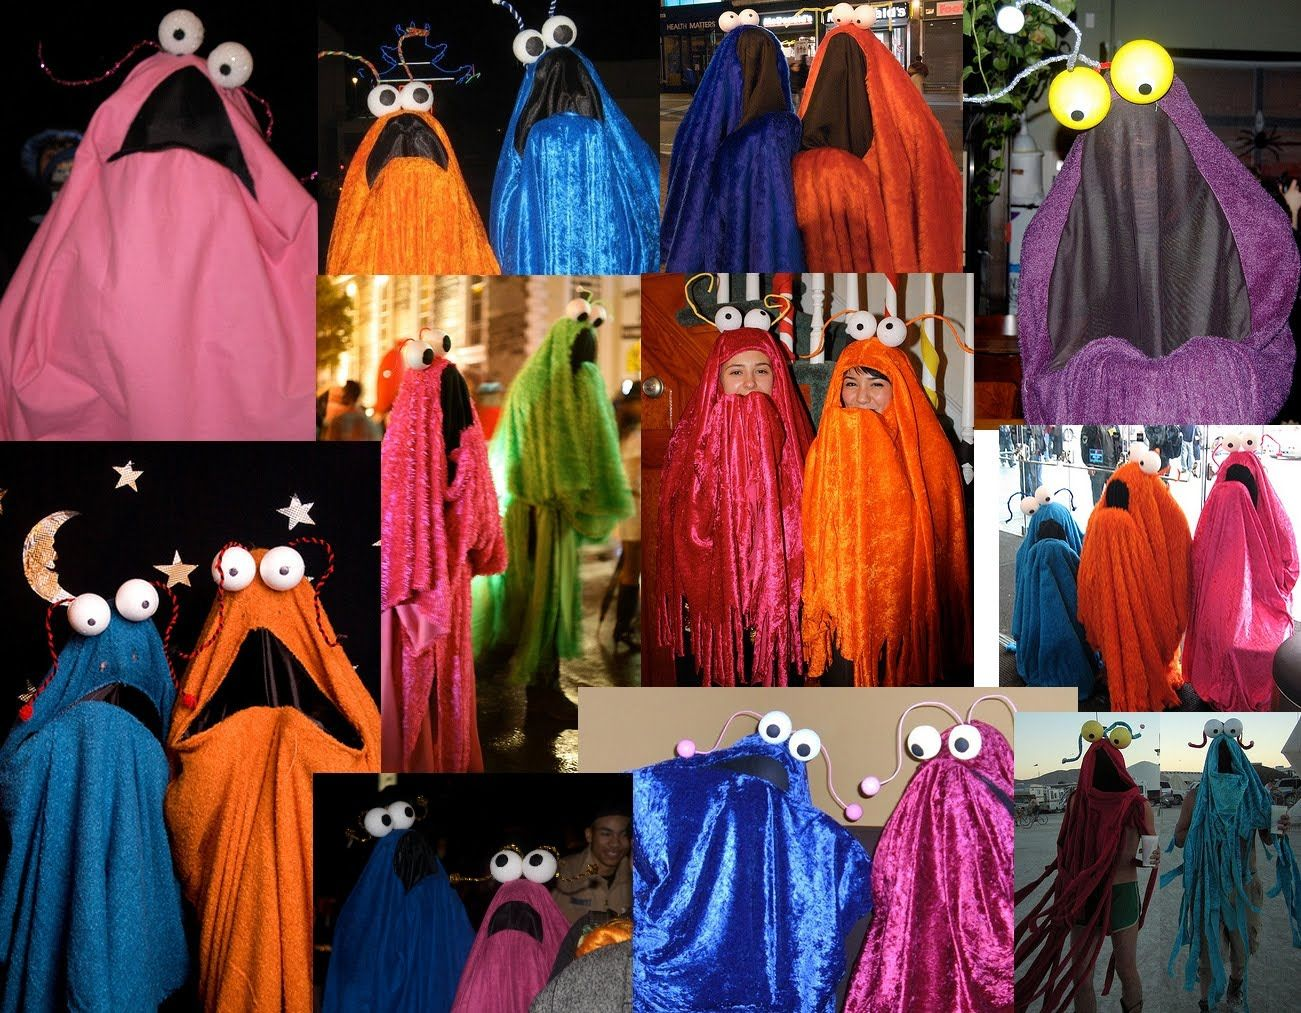 Are these costumes out of this world? Yip yip yip yip yip yip yip uh-huh!